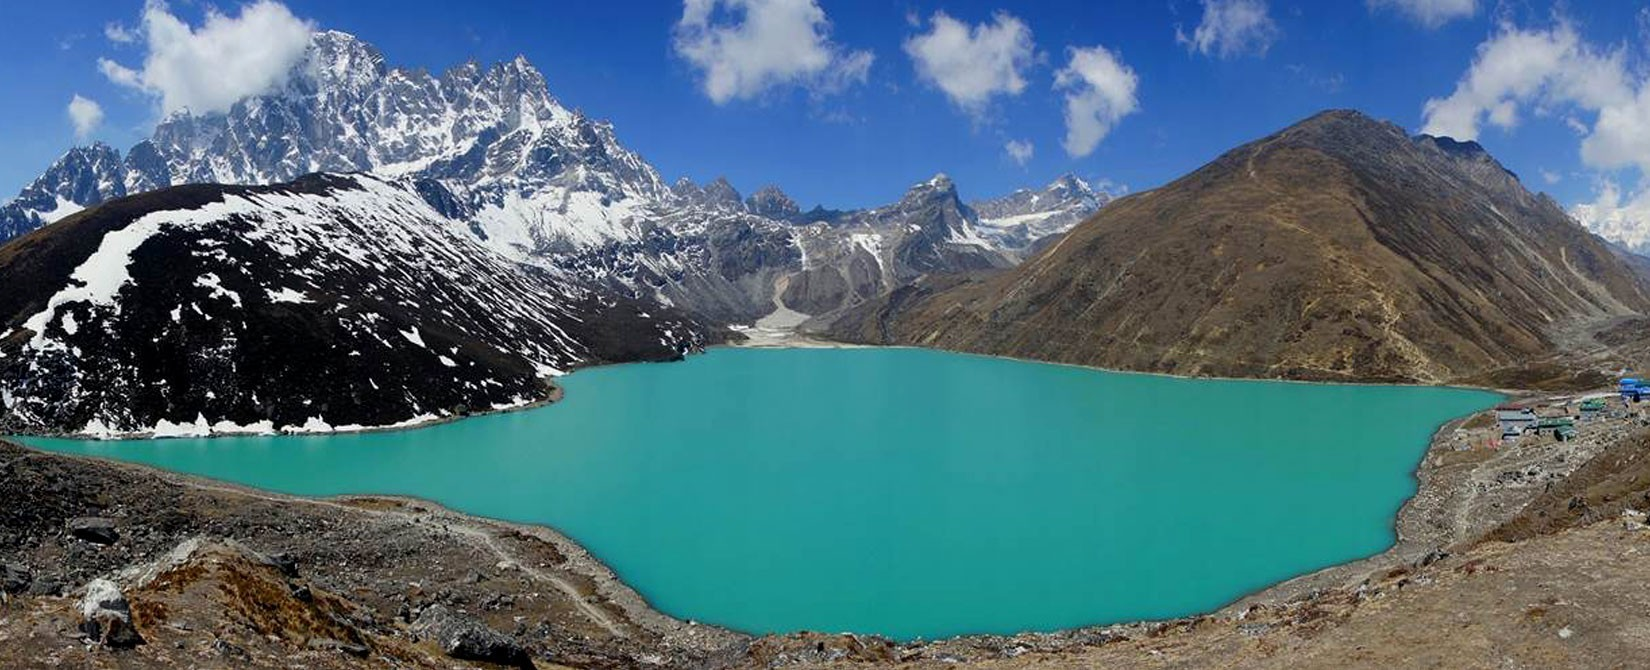 Everest Region Gokyo Lake